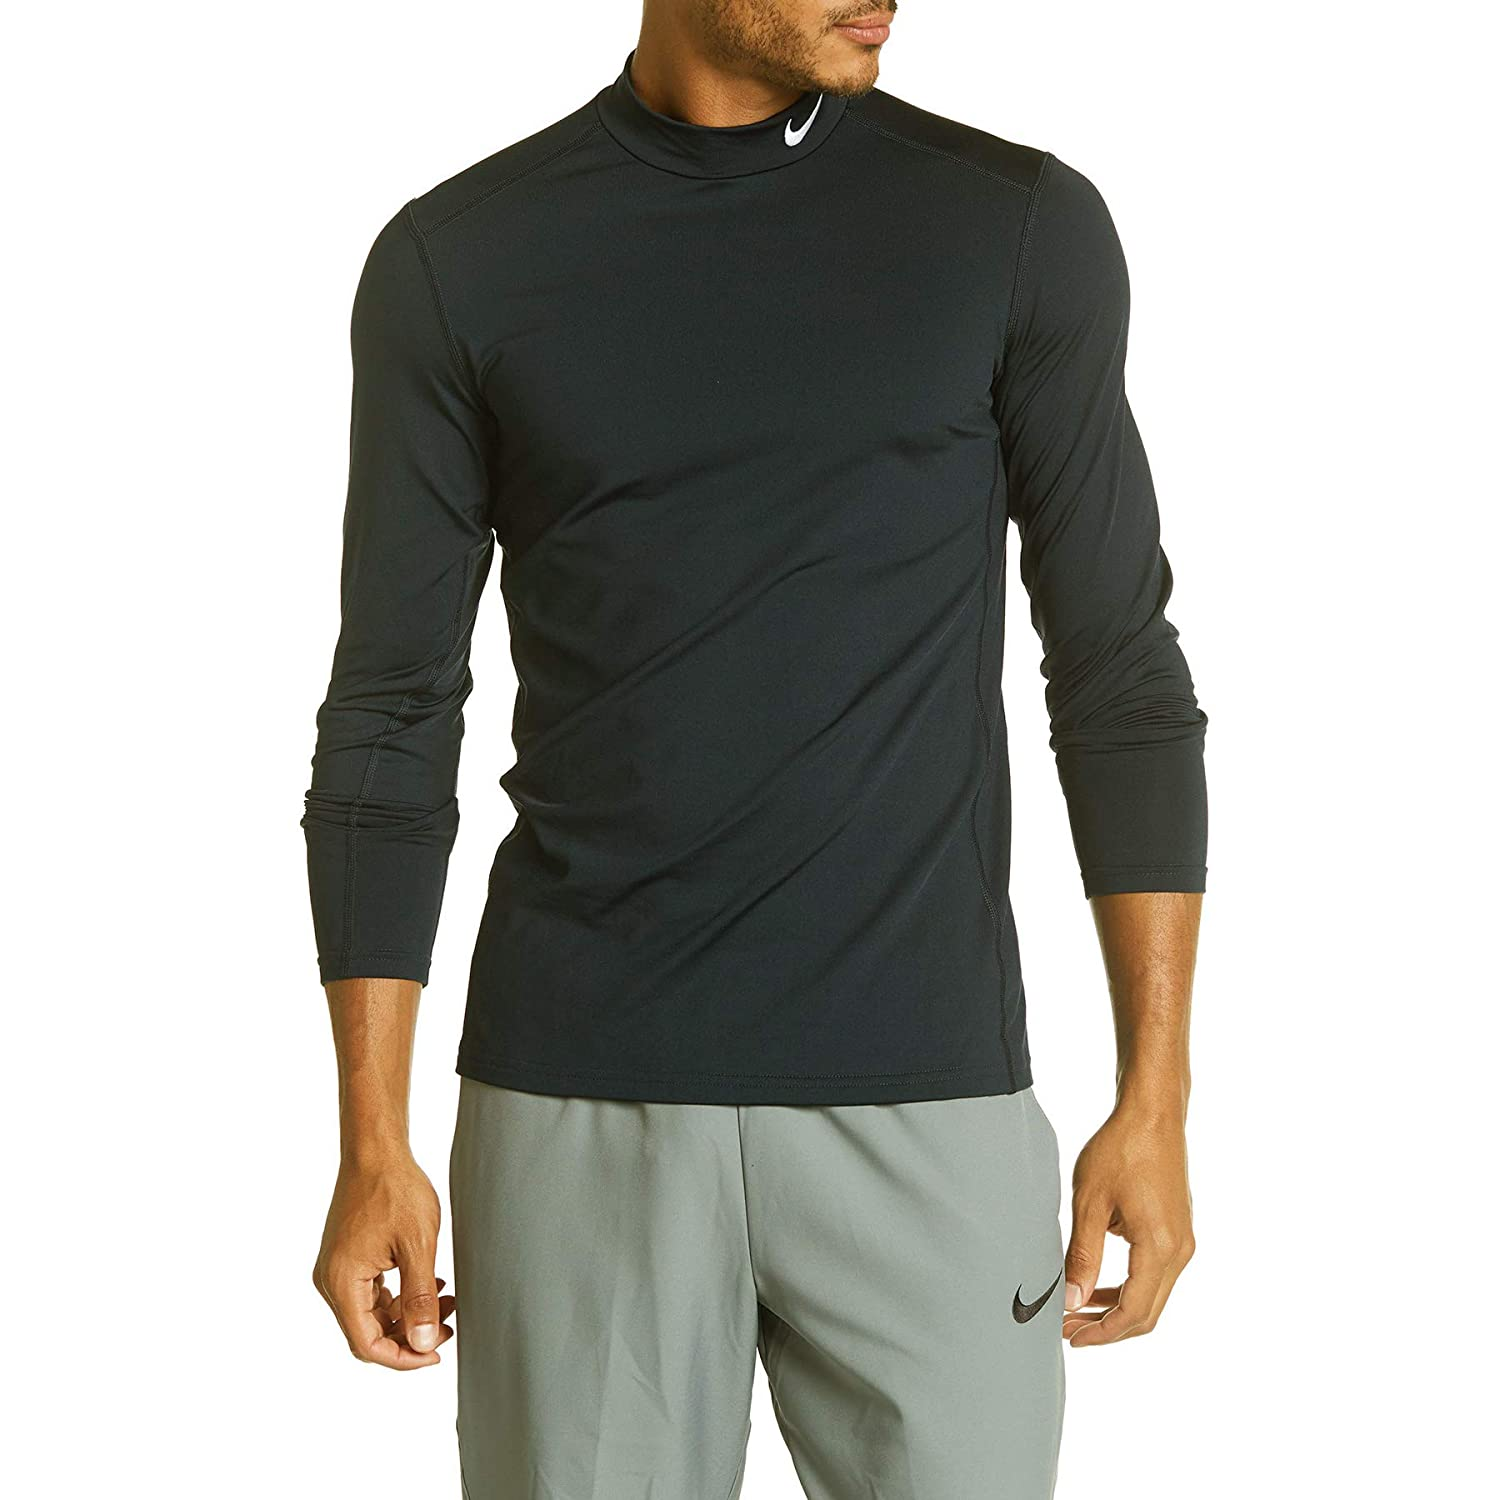 cdd4d0c9 Nike Long-Sleeve Dri-FIT Base Layer Shirt at Amazon Men's Clothing store: